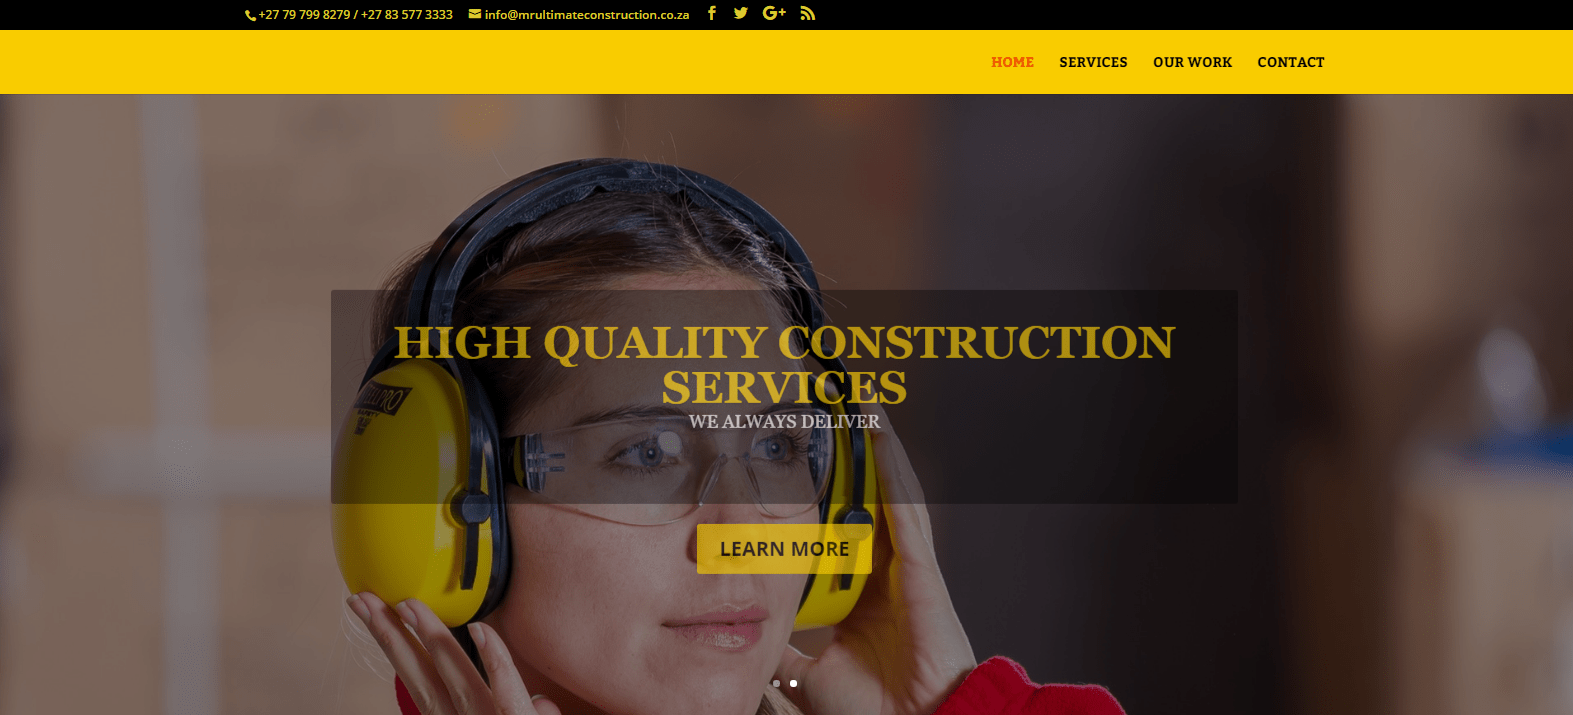 Image Representing Mr Ultimate Construction's Website